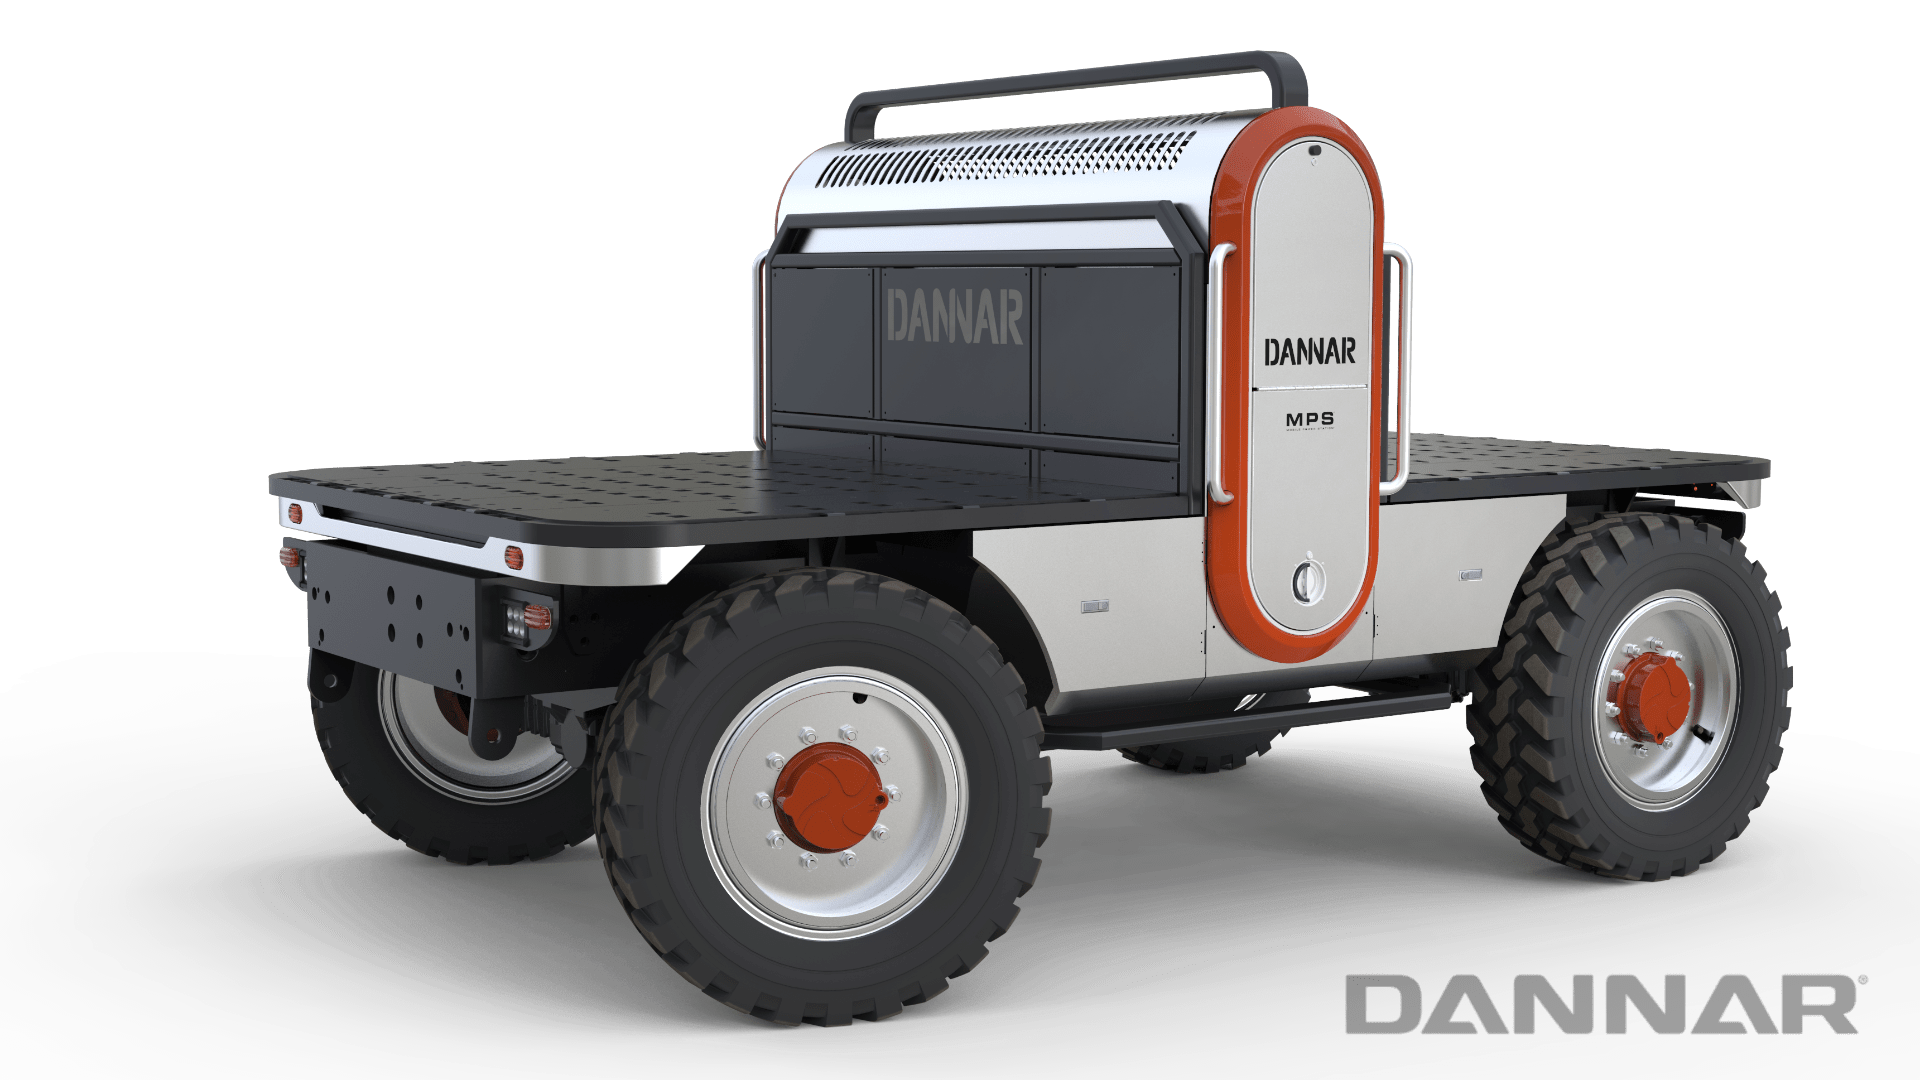 NEW! Introducing the DANNAR 400 Mobile Power Station.